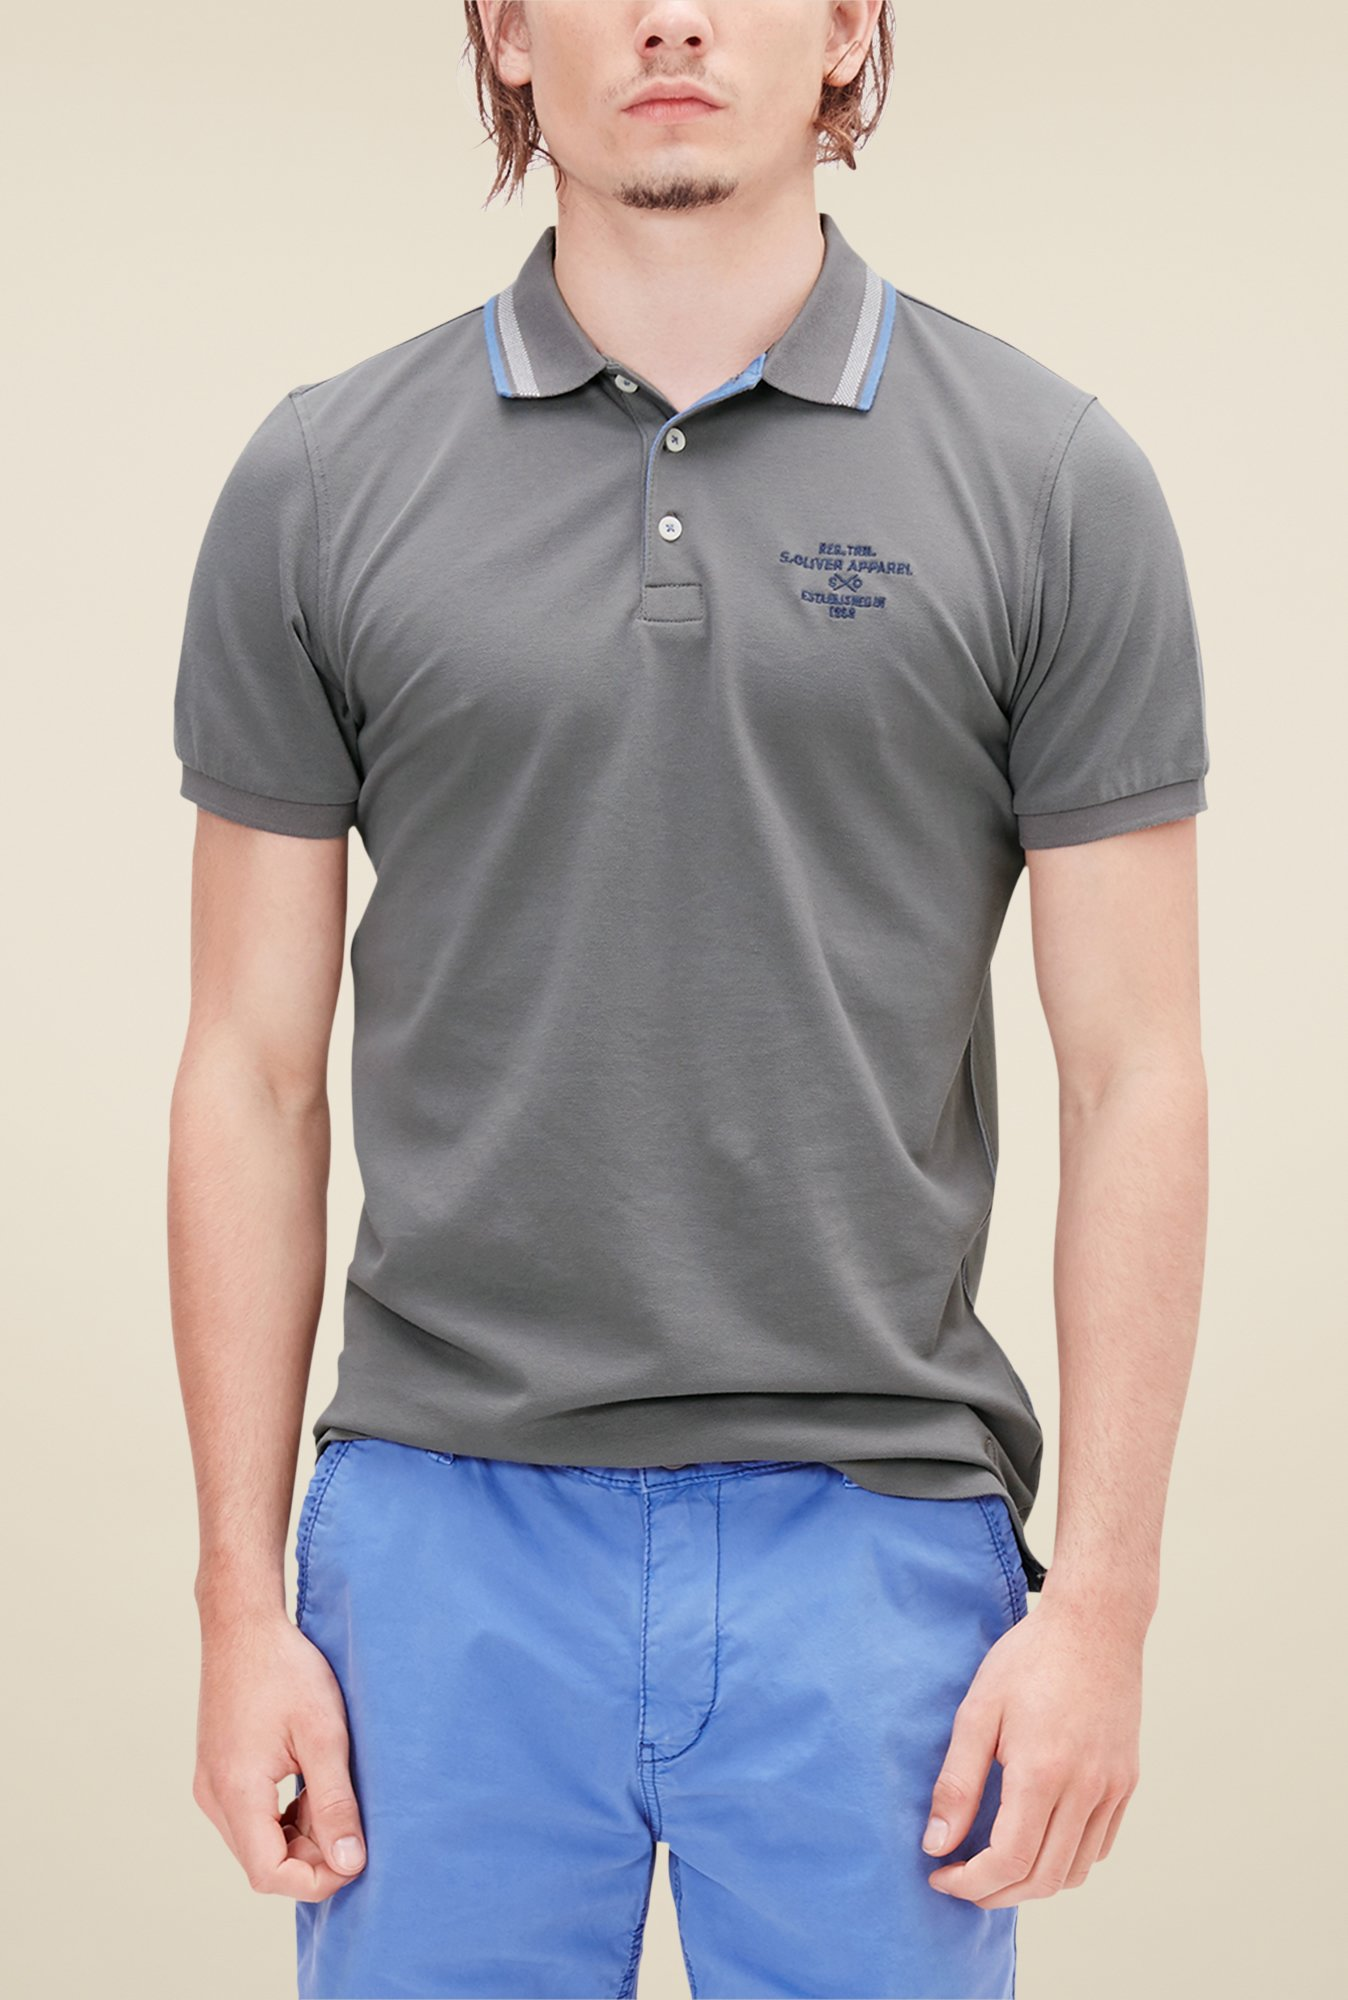 buy s oliver grey solid polo t shirt for men online tata. Black Bedroom Furniture Sets. Home Design Ideas